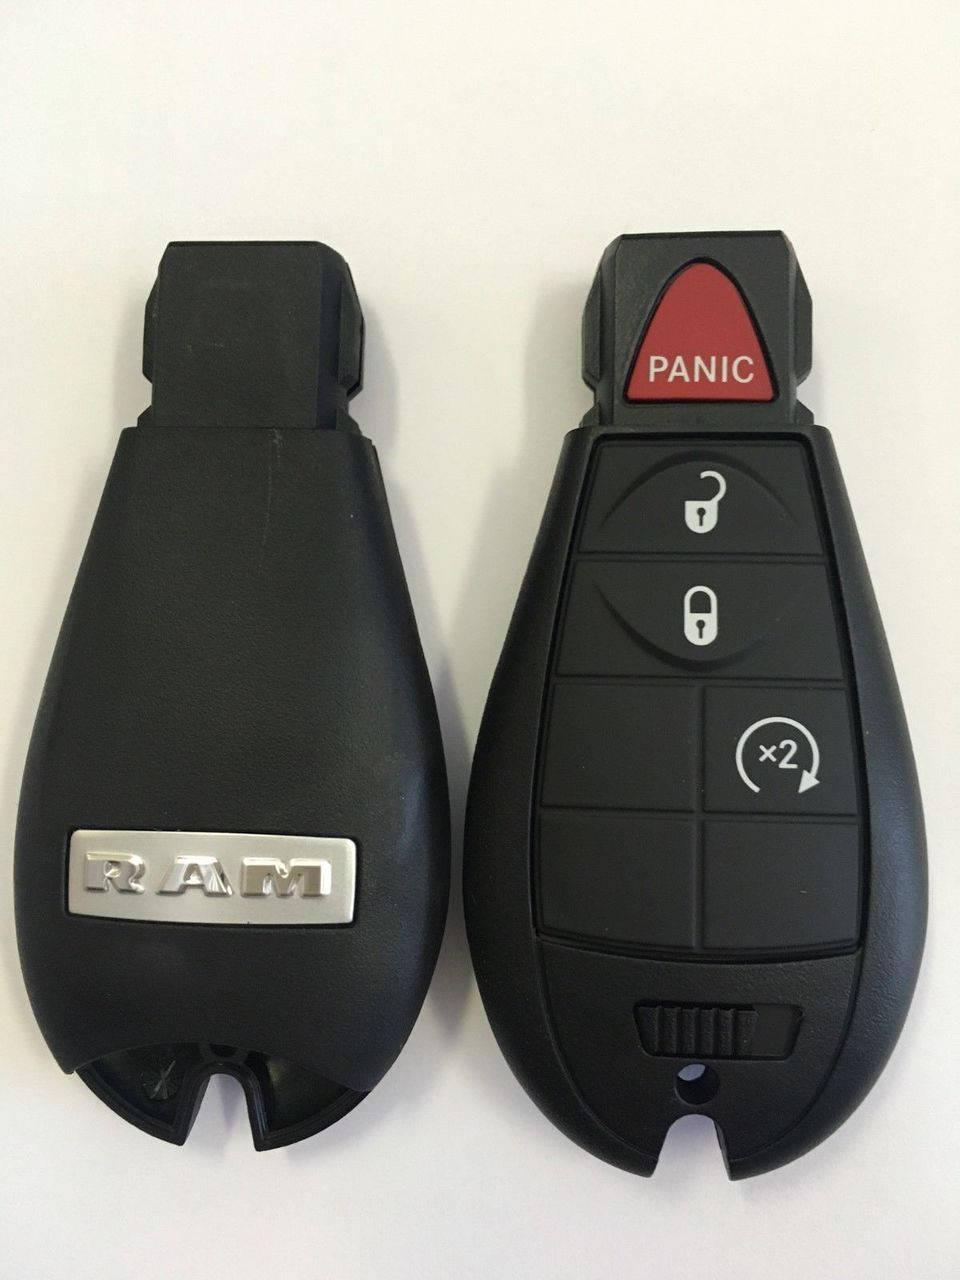 G Pontiac Wire Alert Units also Dodge further Ram Zpsz Szql moreover Gm A Sul Sl Ac Ss together with After Install. on 2013 dodge ram 1500 remote start